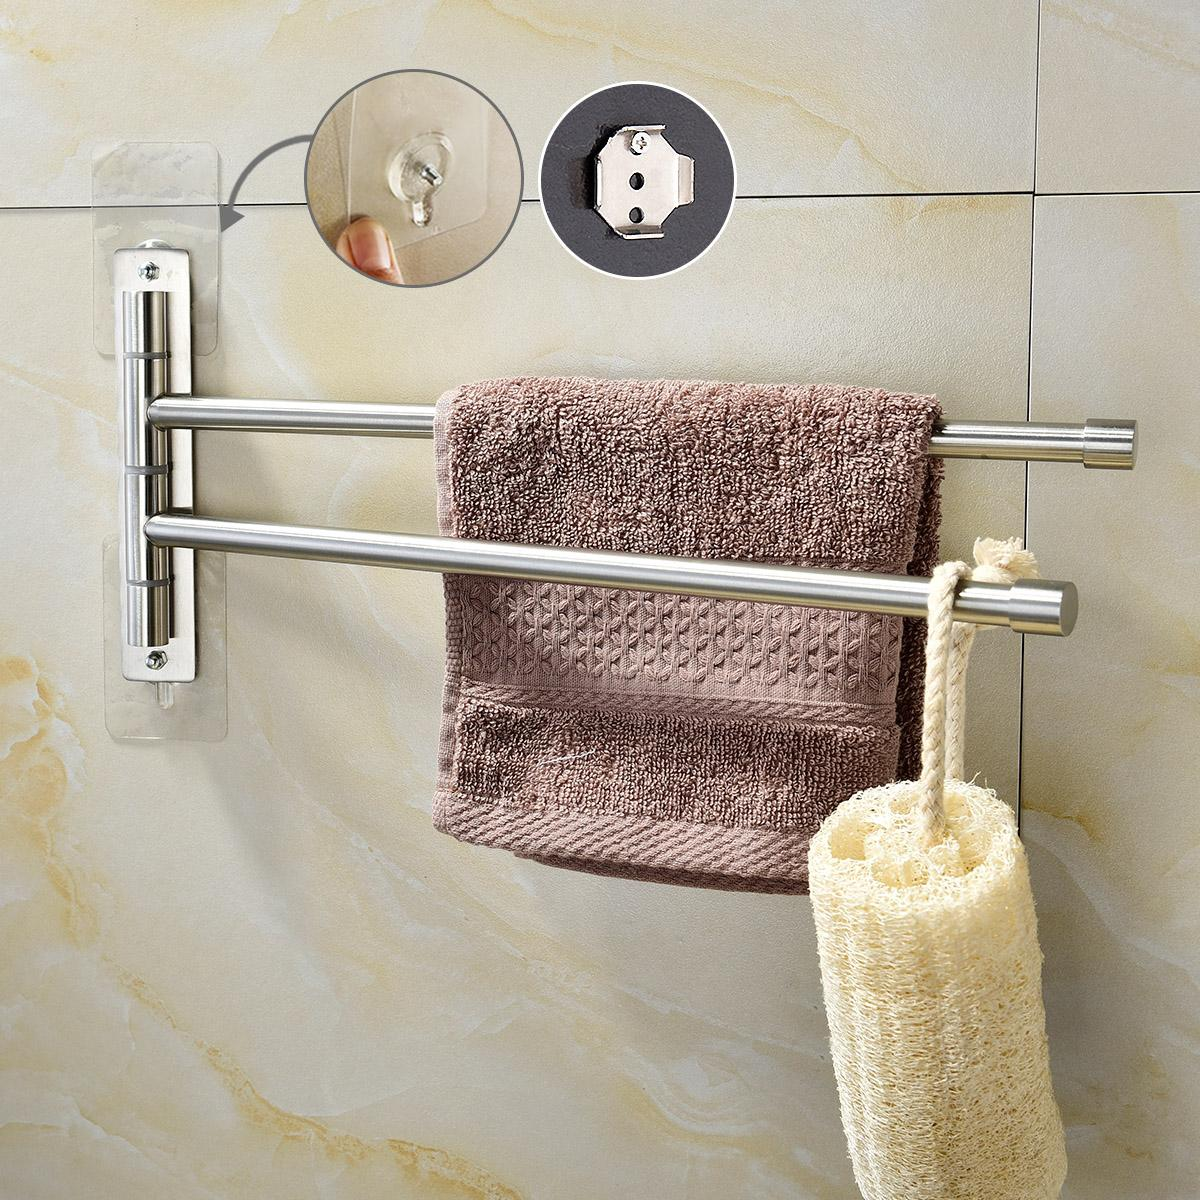 Brushed Nickel Stainless Steel Self Adhesive Swivel Towel Bar ...